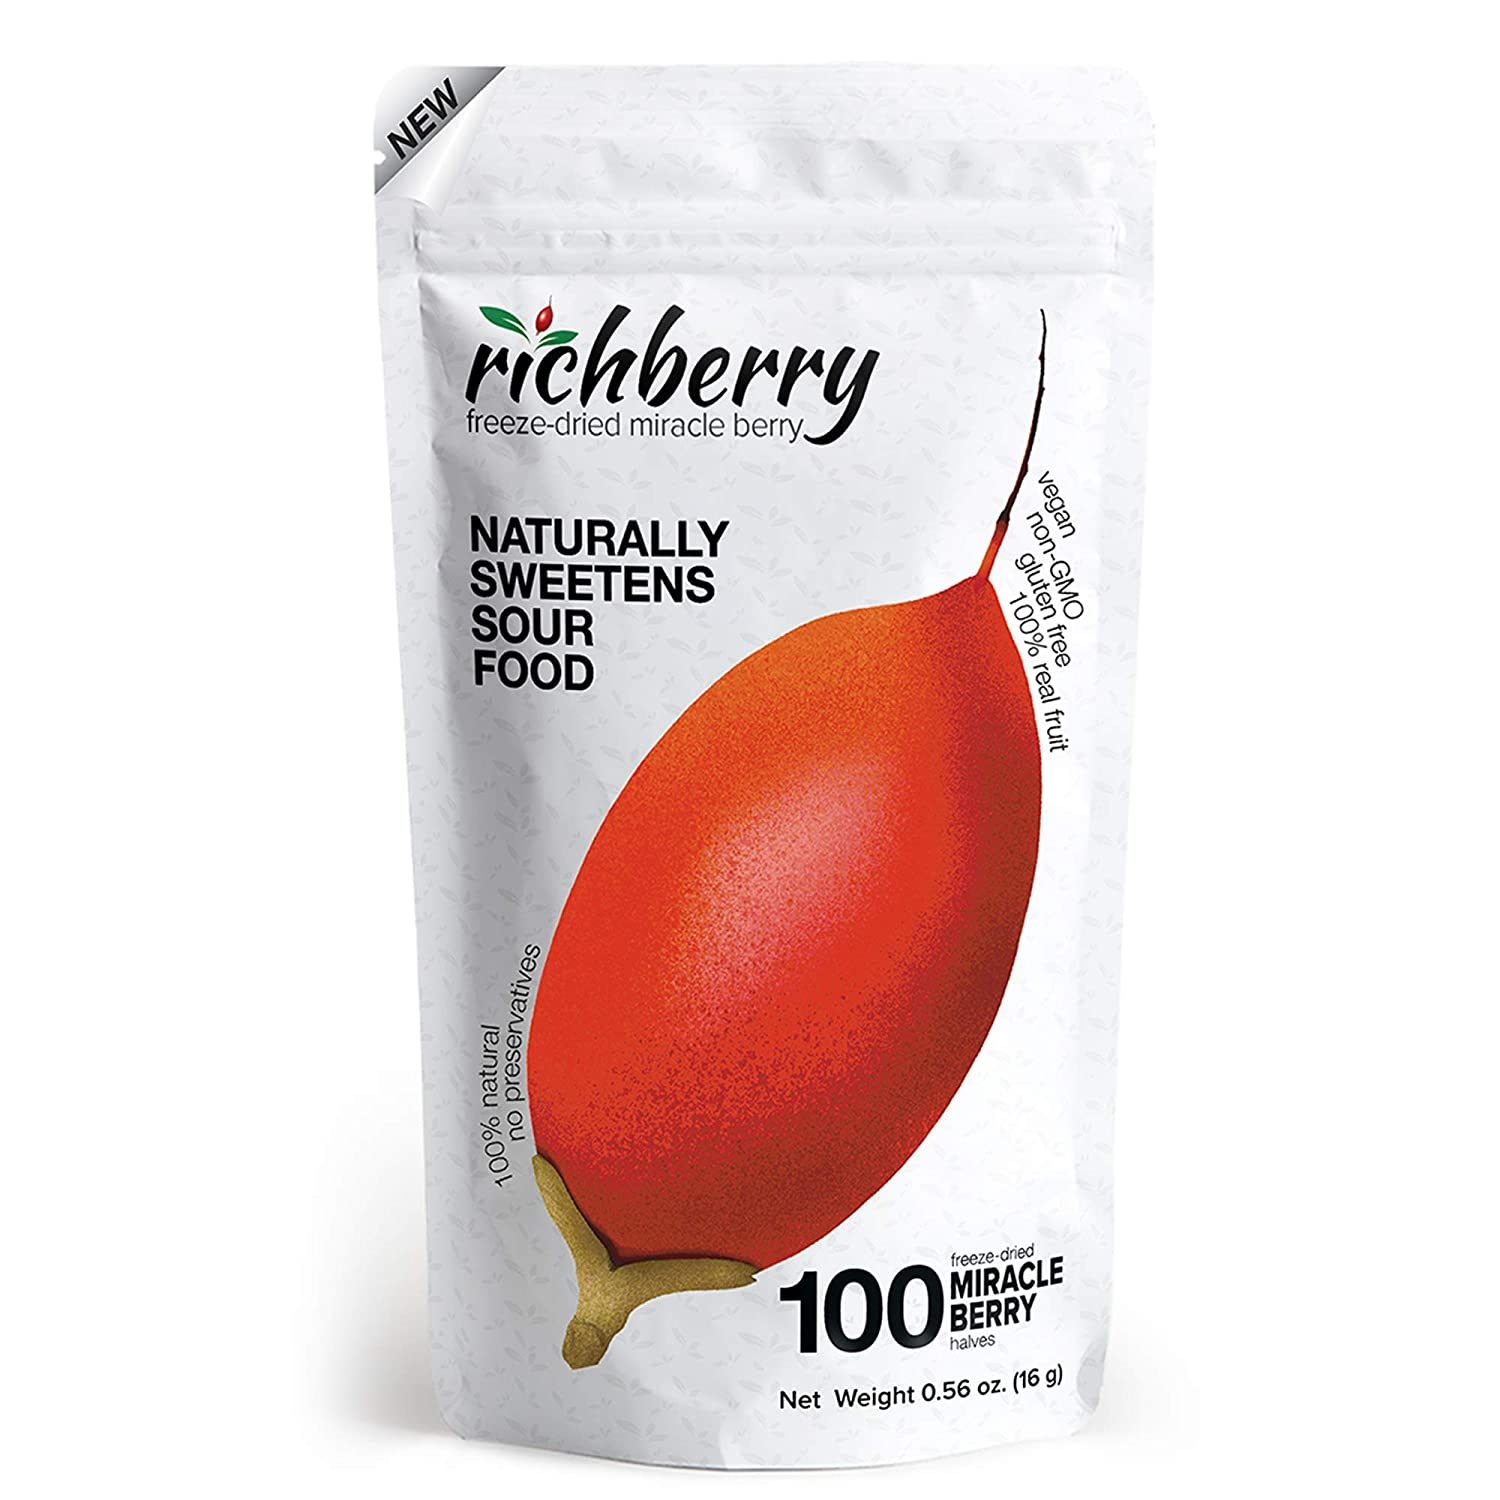 Miracle Berry by richberry, 1 Pack of 100 Halves (16g), Naturally Sweetens Sour Food, 100% Freeze-dried Premium Fruits, No Preservatives, Great for Snacks and Taste Tripping, Vegan